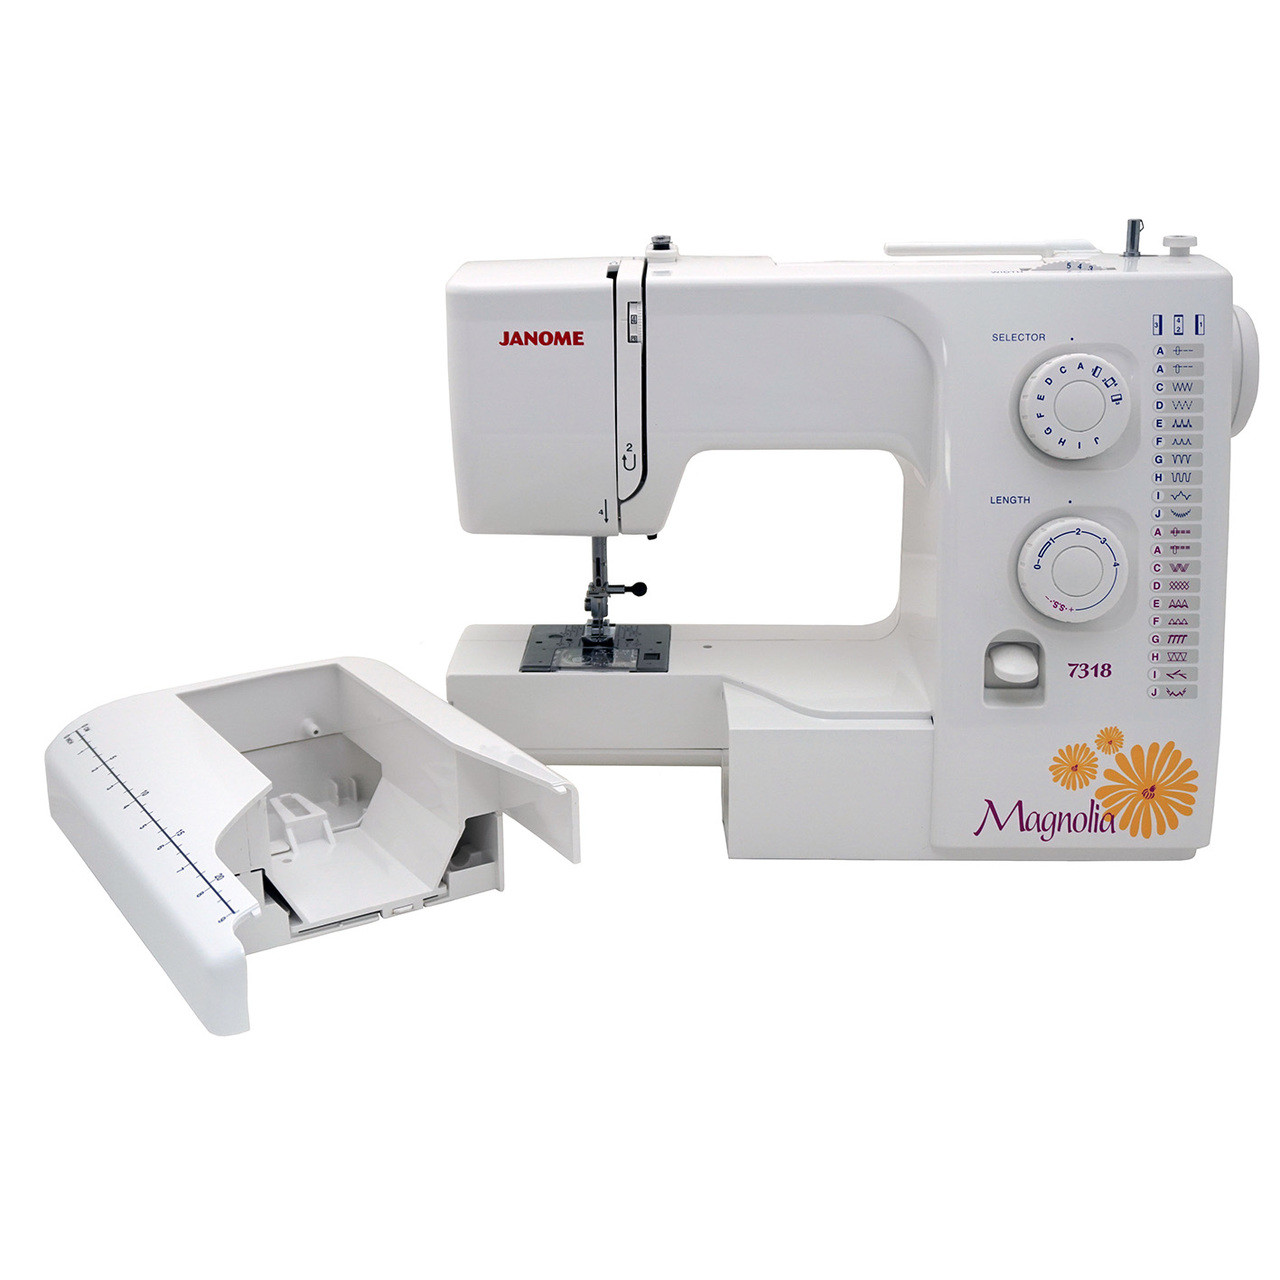 ... Janome Magnolia 7318 Sewing Machine with Exclusive Bonus Bundle ...